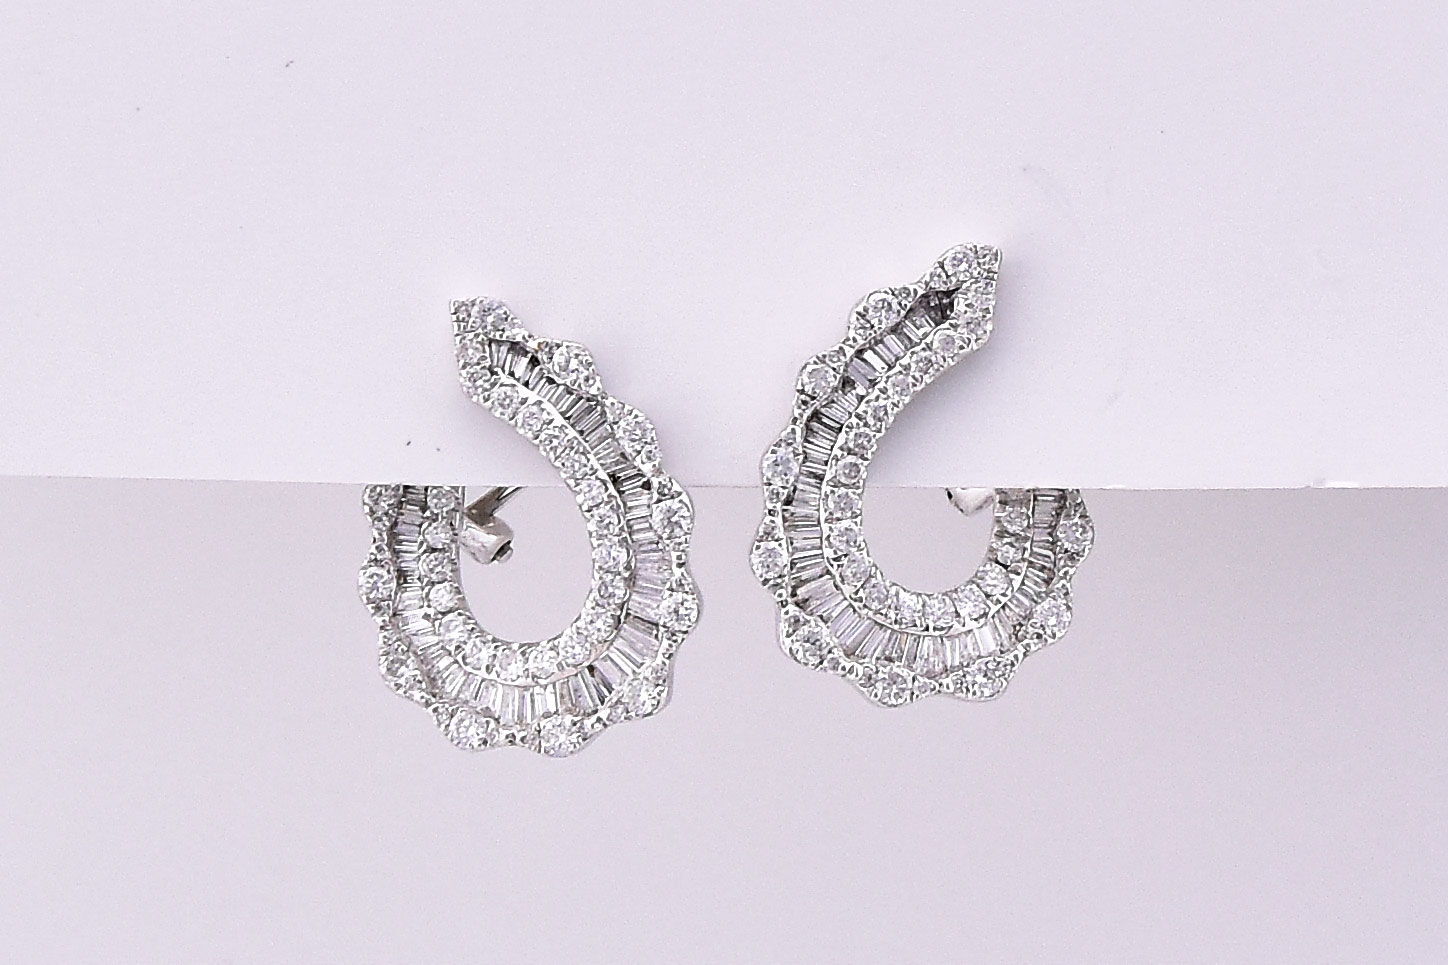 Almost 1.5 Carats Total Weight Diamond Earrings